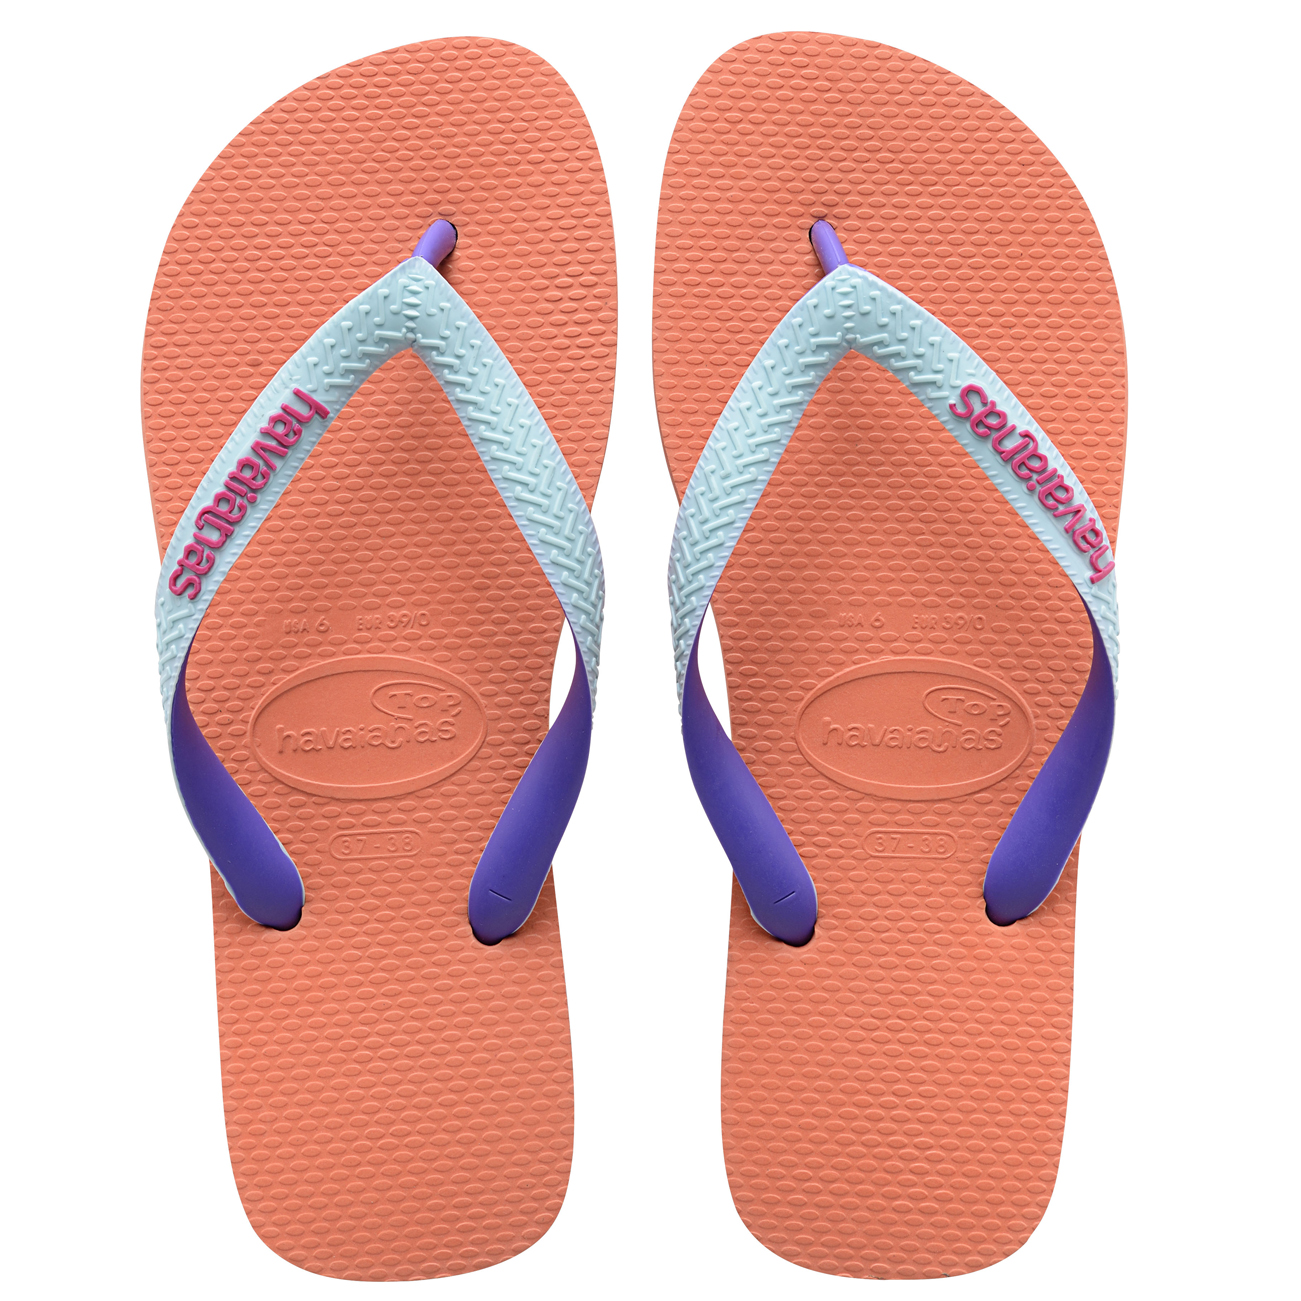 What Such a Havaianas in Winter?